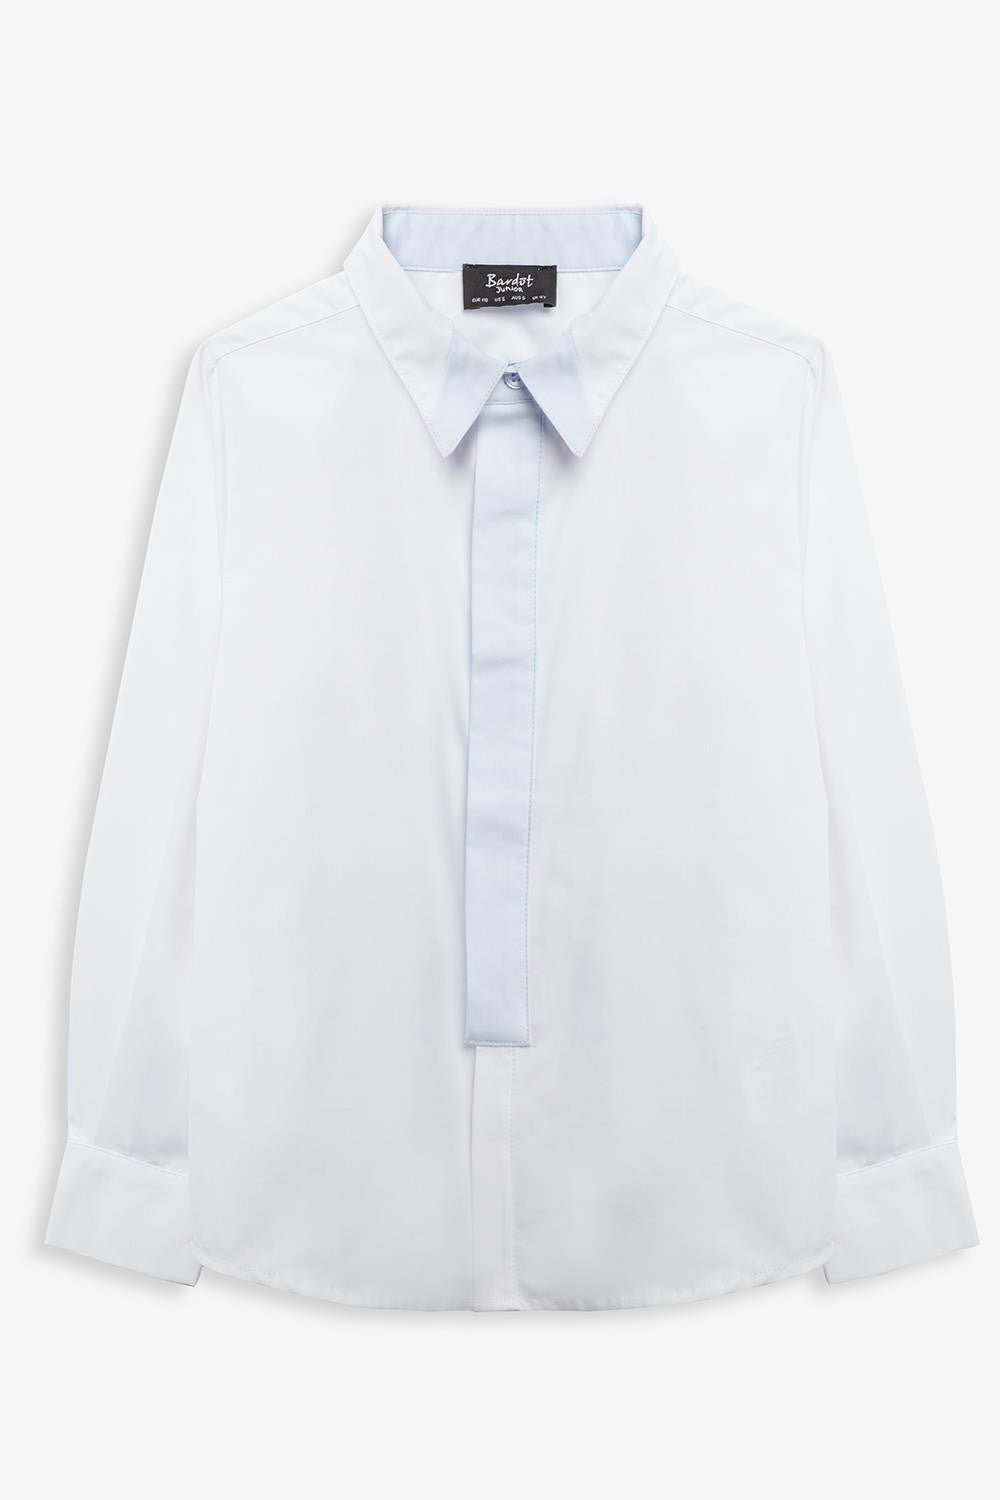 Contrast Placket Shirt 8-12